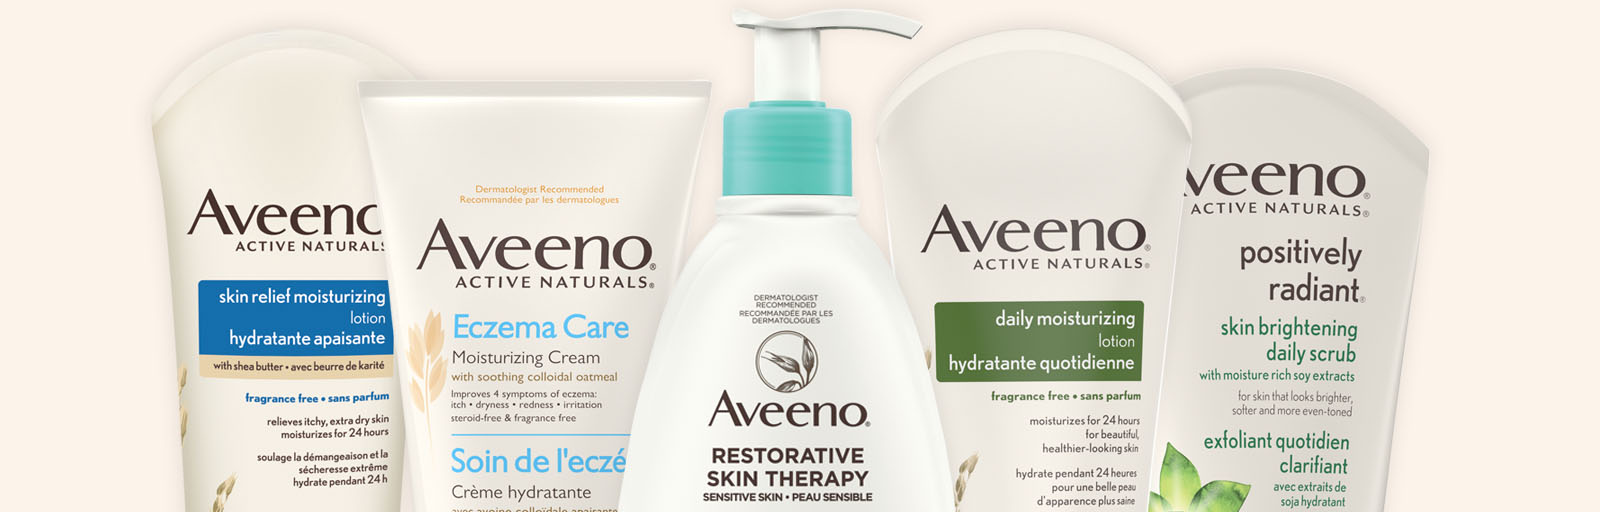 Aveeno body skincare products for moisturized, healthy skin